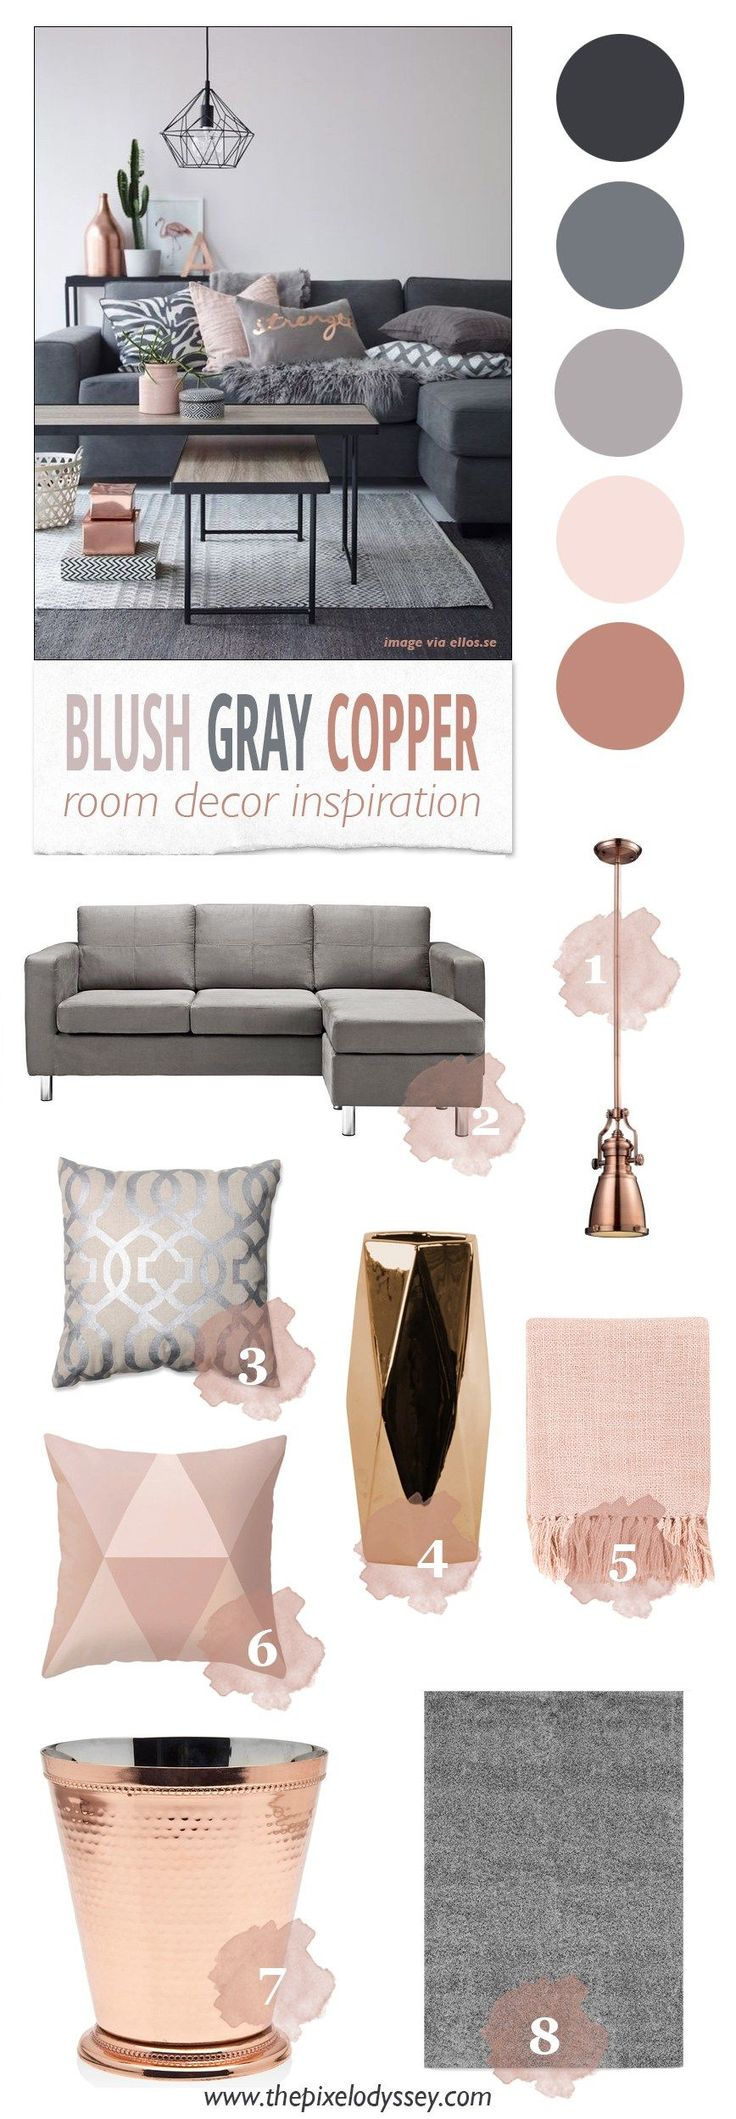 Blush Gray Copper Room Decor Inspiration. Apartment Color SchemesInterior  ...